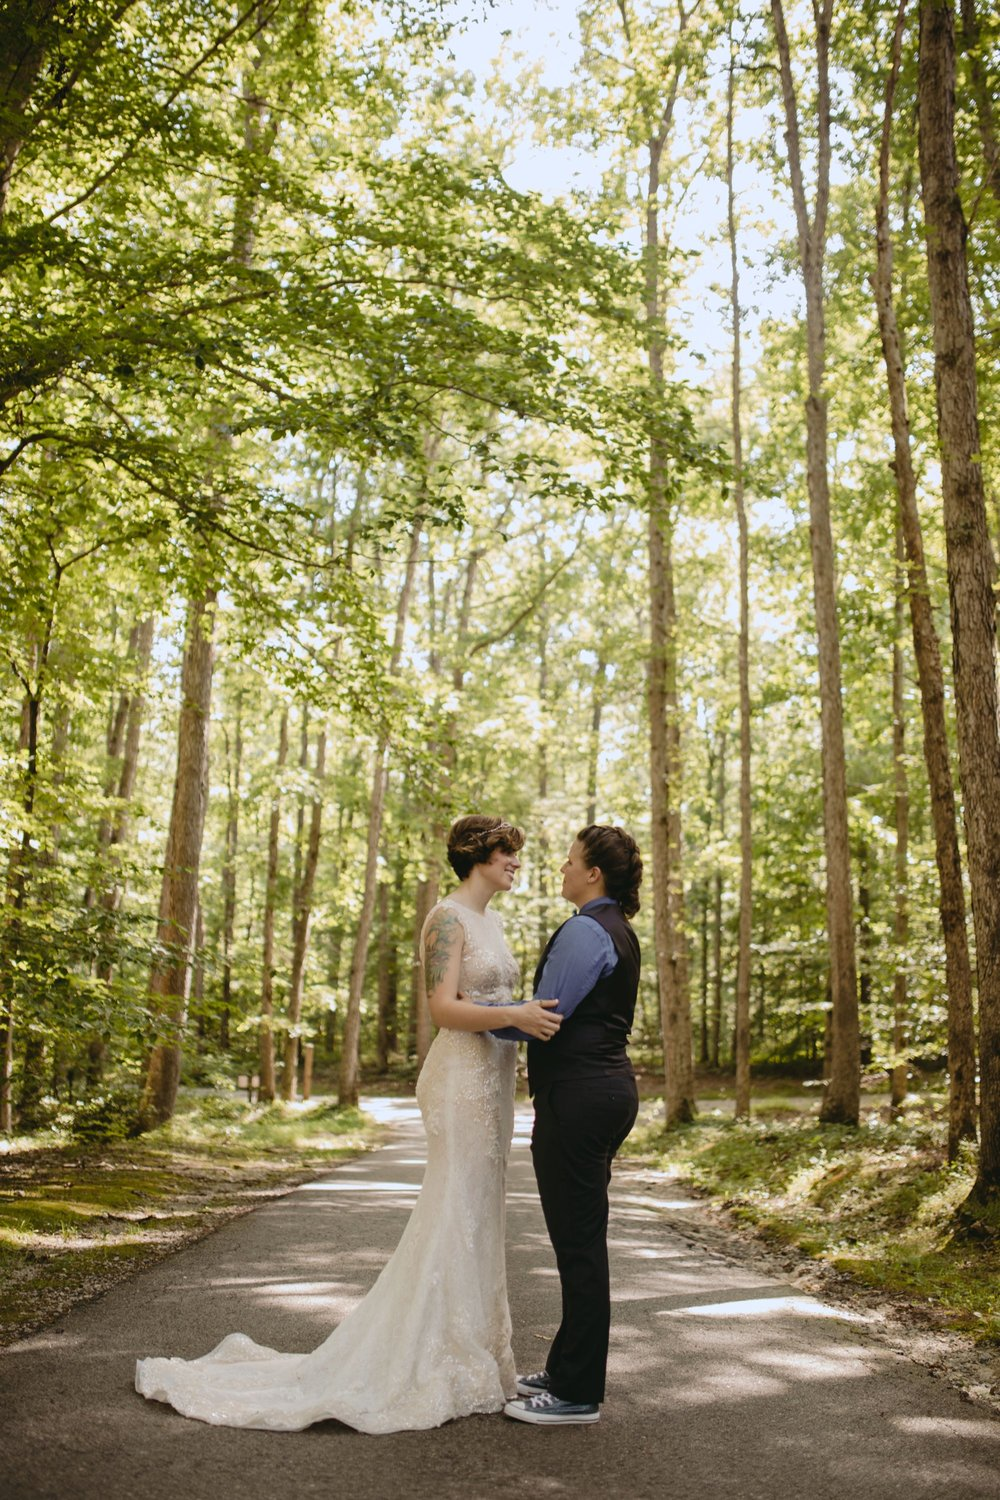 Richmond Va same-sex wedding in pocahontas state park with a simple ceremony. Forest portrait.